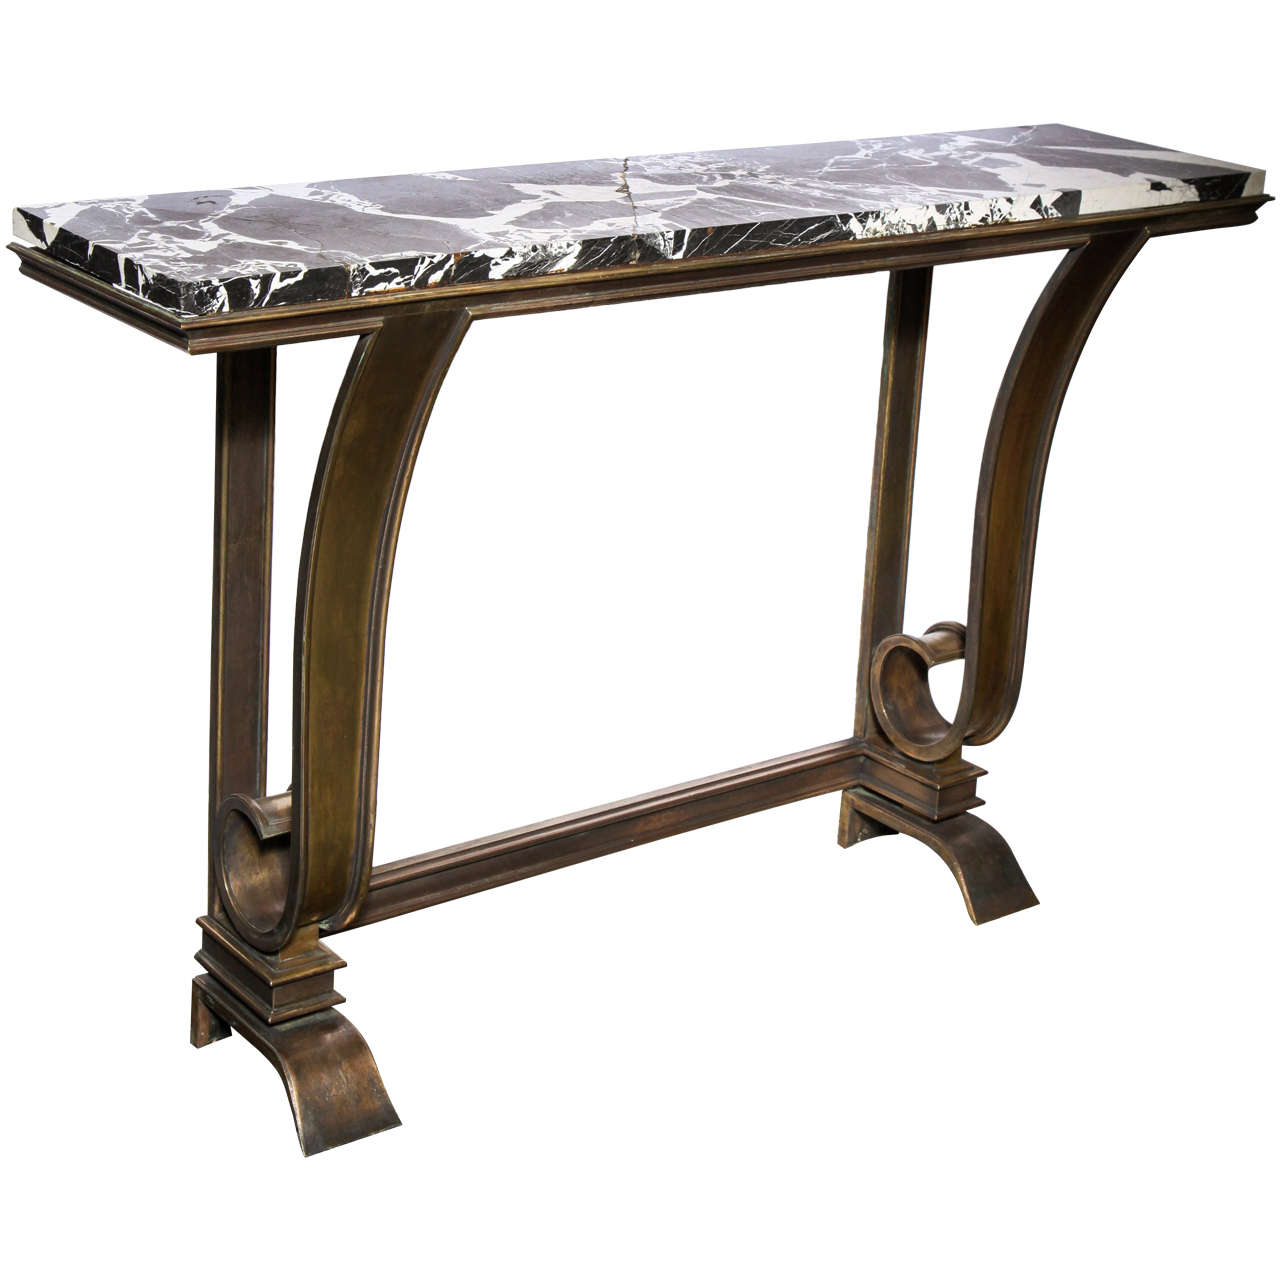 Charmant 1930s French Art Deco, Nickel Iron And Marble Console Table For Sale